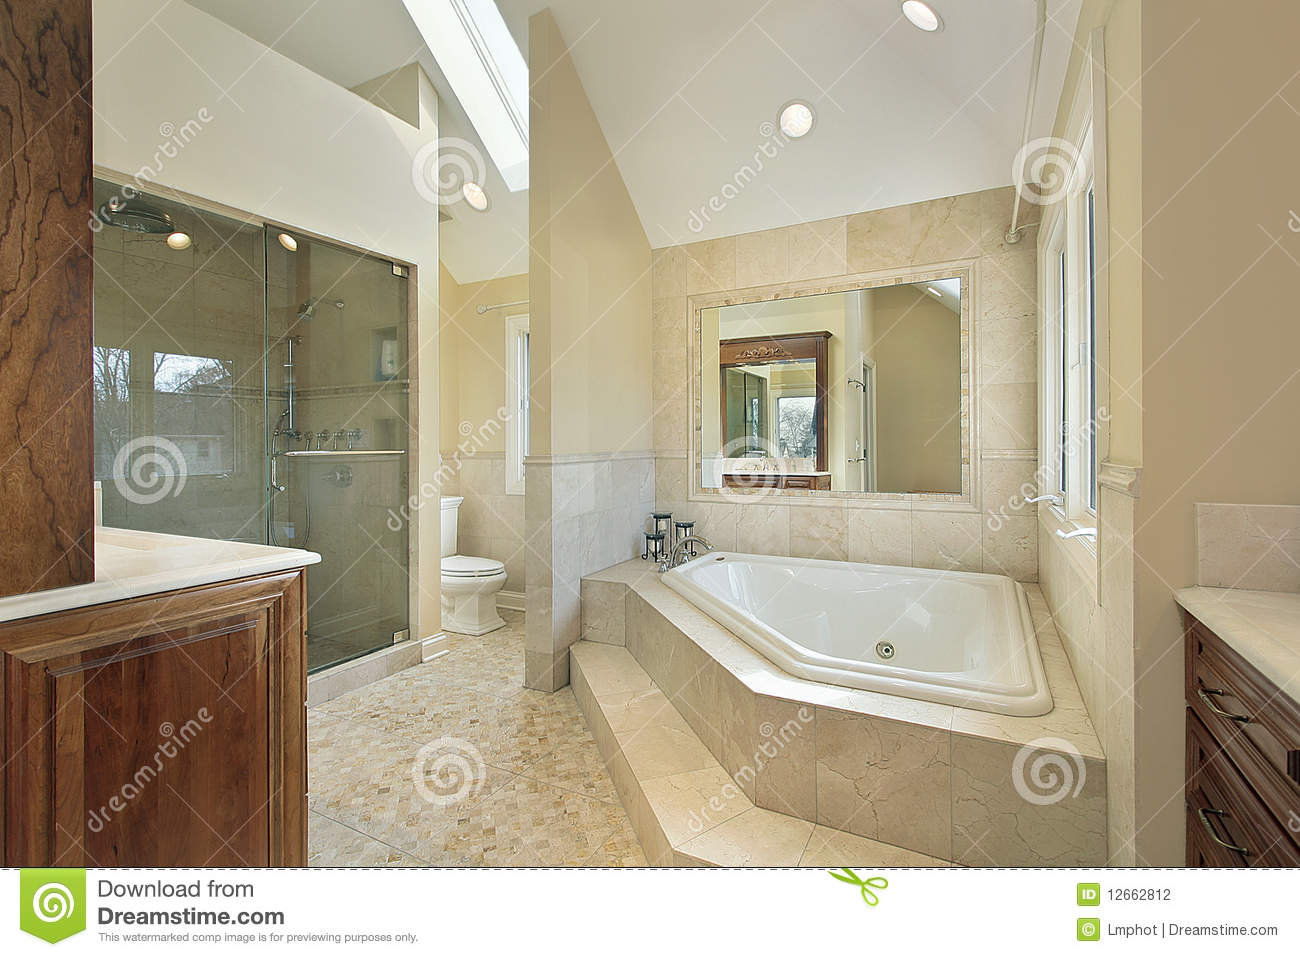 Http Dreamstime Com Stock Photography Master Bath Large Tub Image12662812